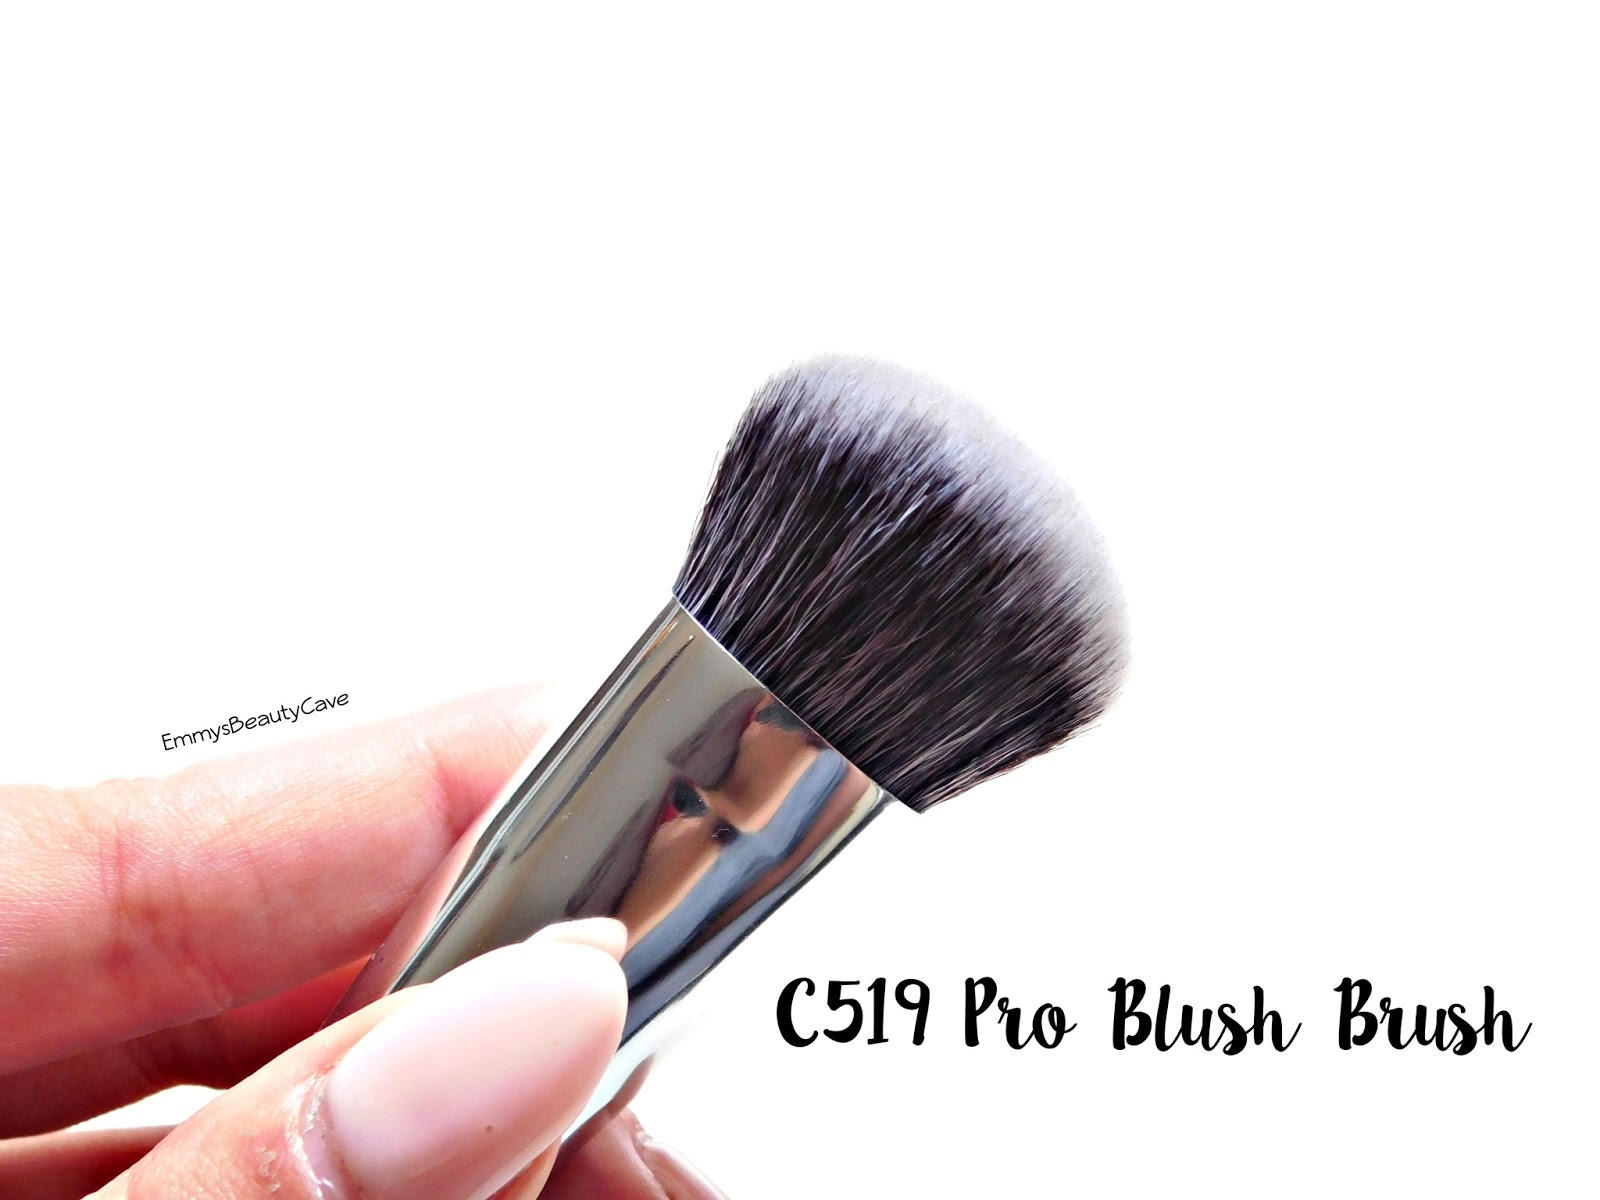 crown brushes. crown brush c519 pro lush blush brushes